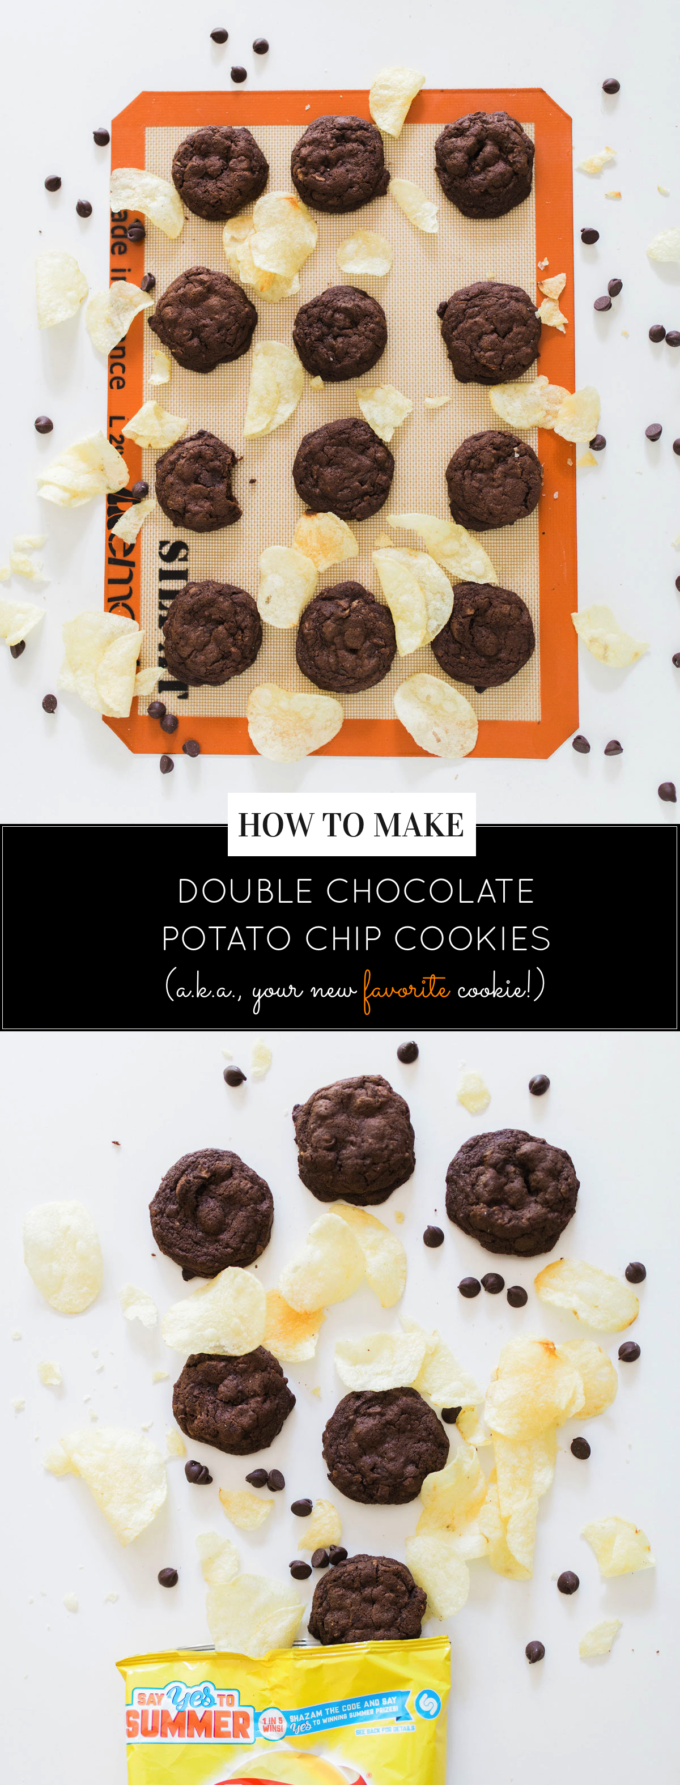 Decadent Double Chocolate Potato Chip Cookies by foodie blogger Lexi of Glitter, Inc. Click through for the recipe. | glitterinc.com | @glitterinc